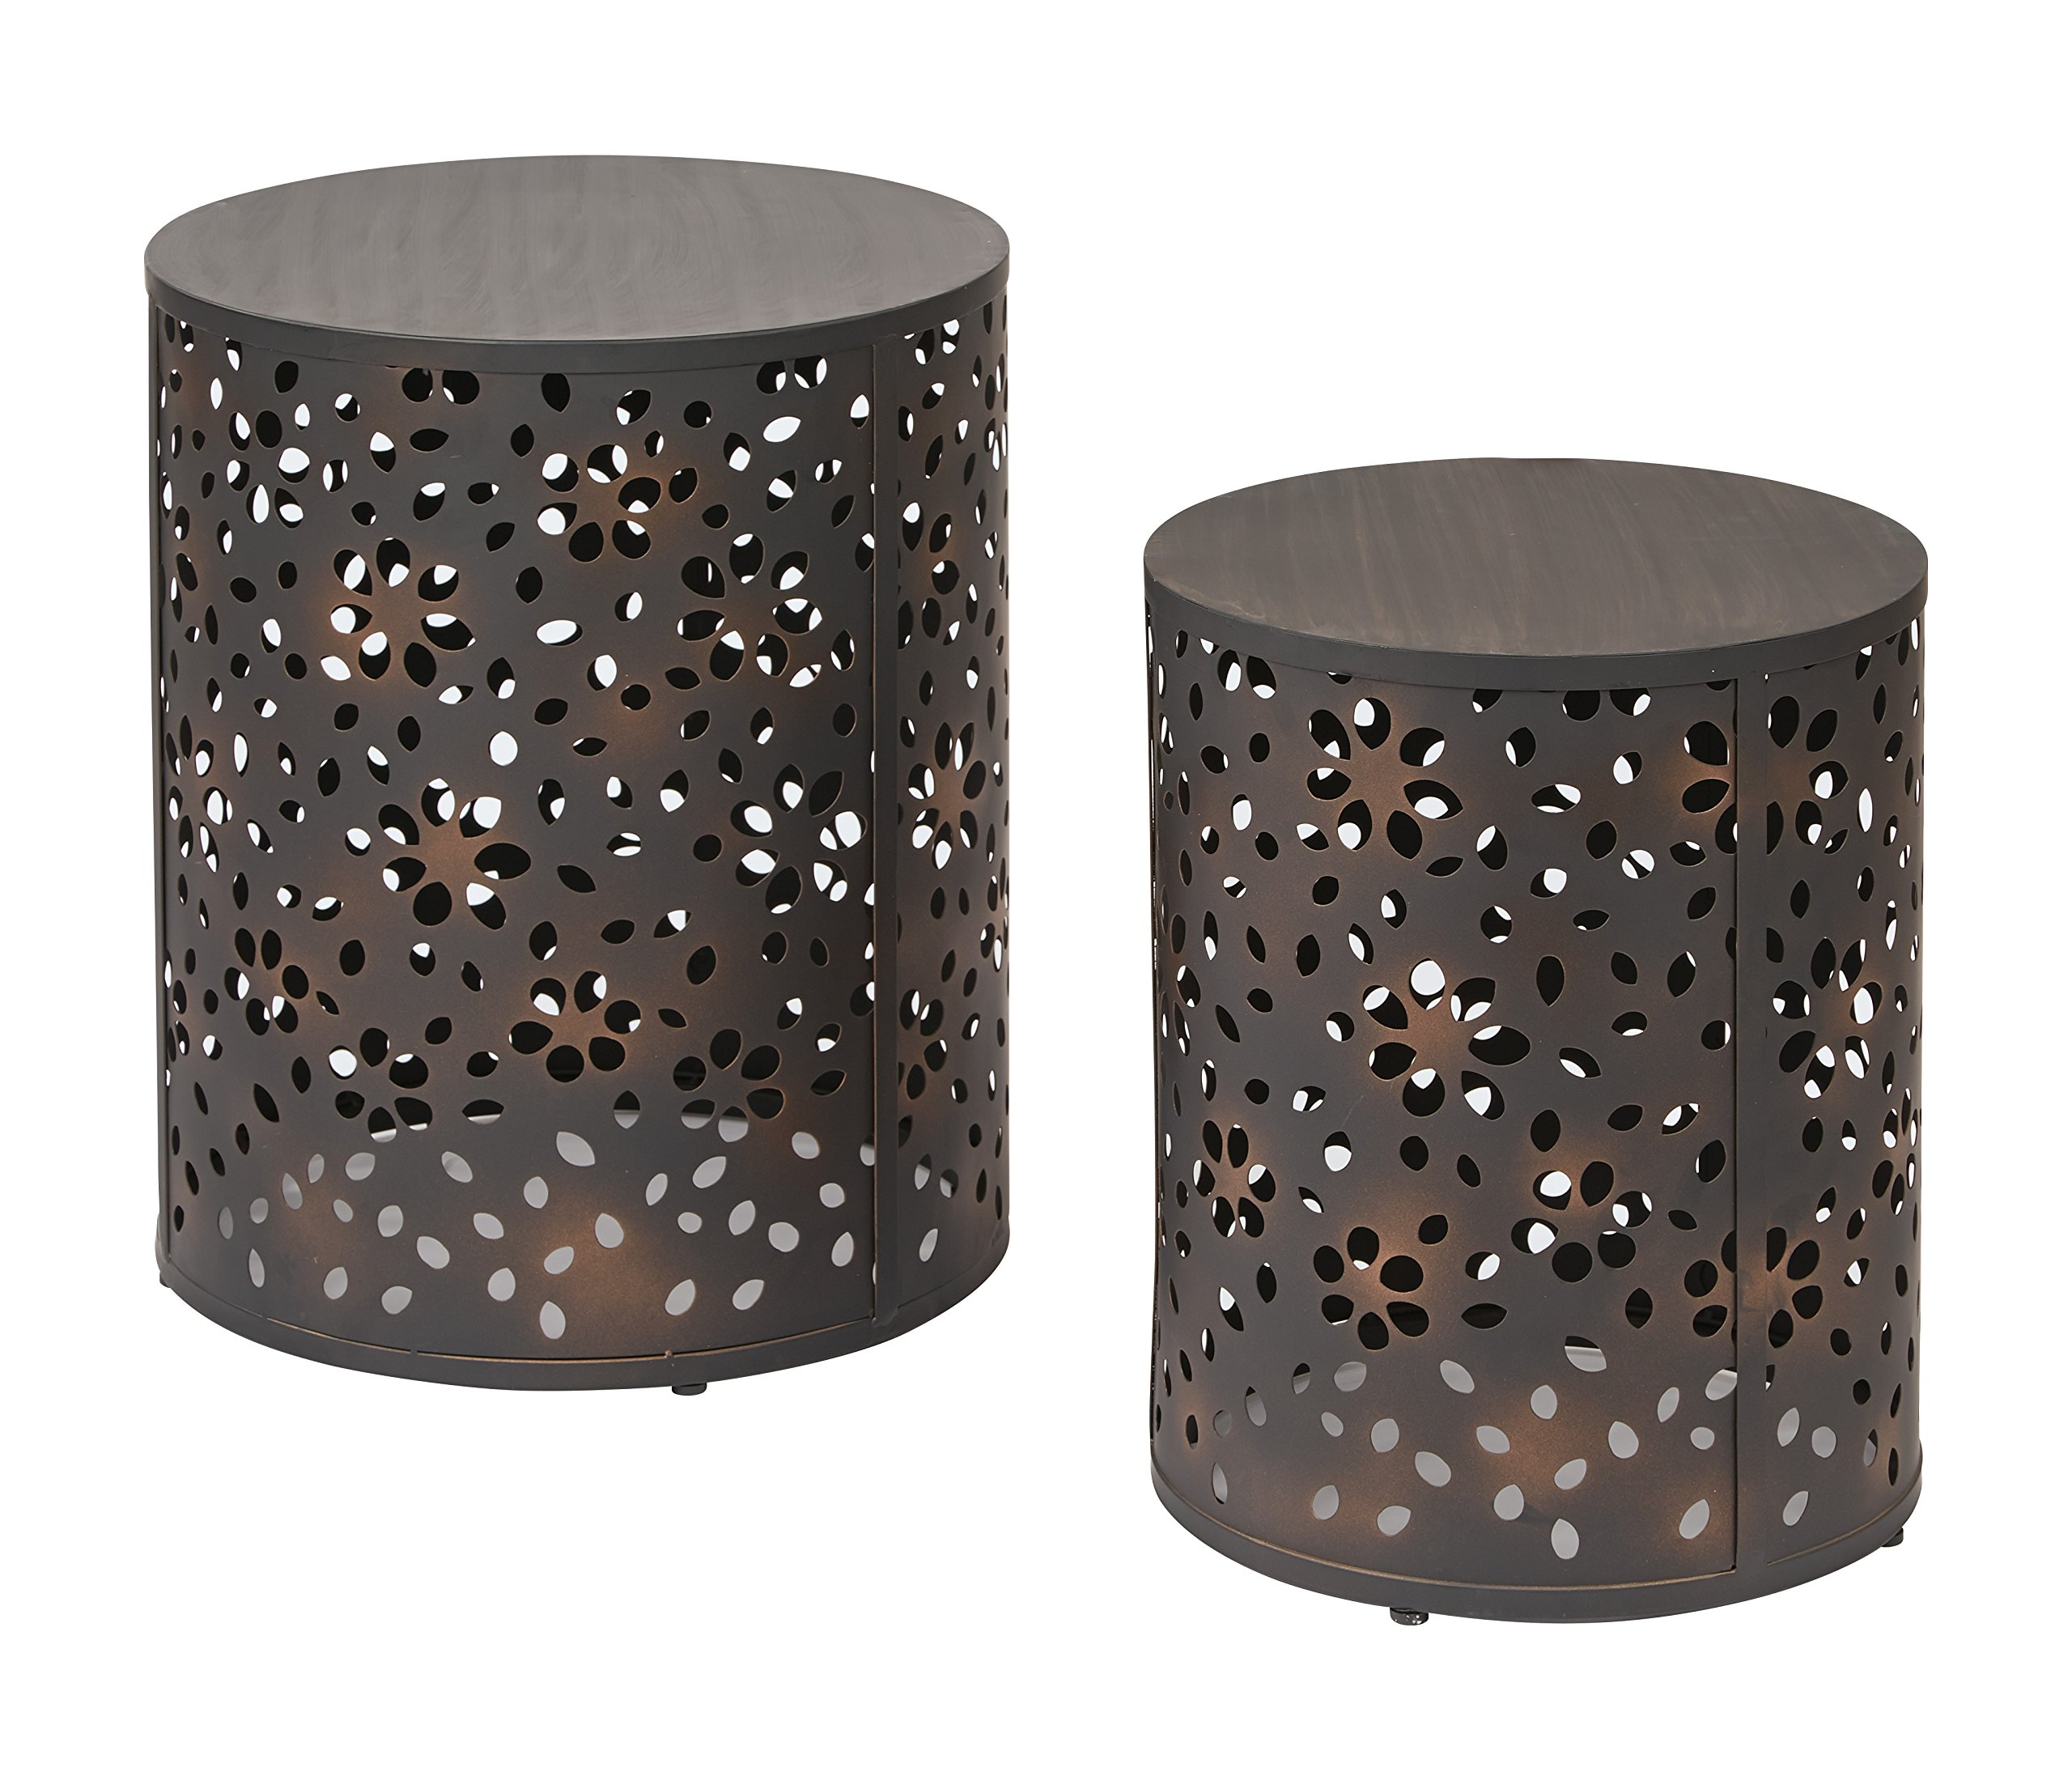 Office Star Middleton 2 Piece Round Accent Tables Set, Rustic Metal Finish by OSP Designs